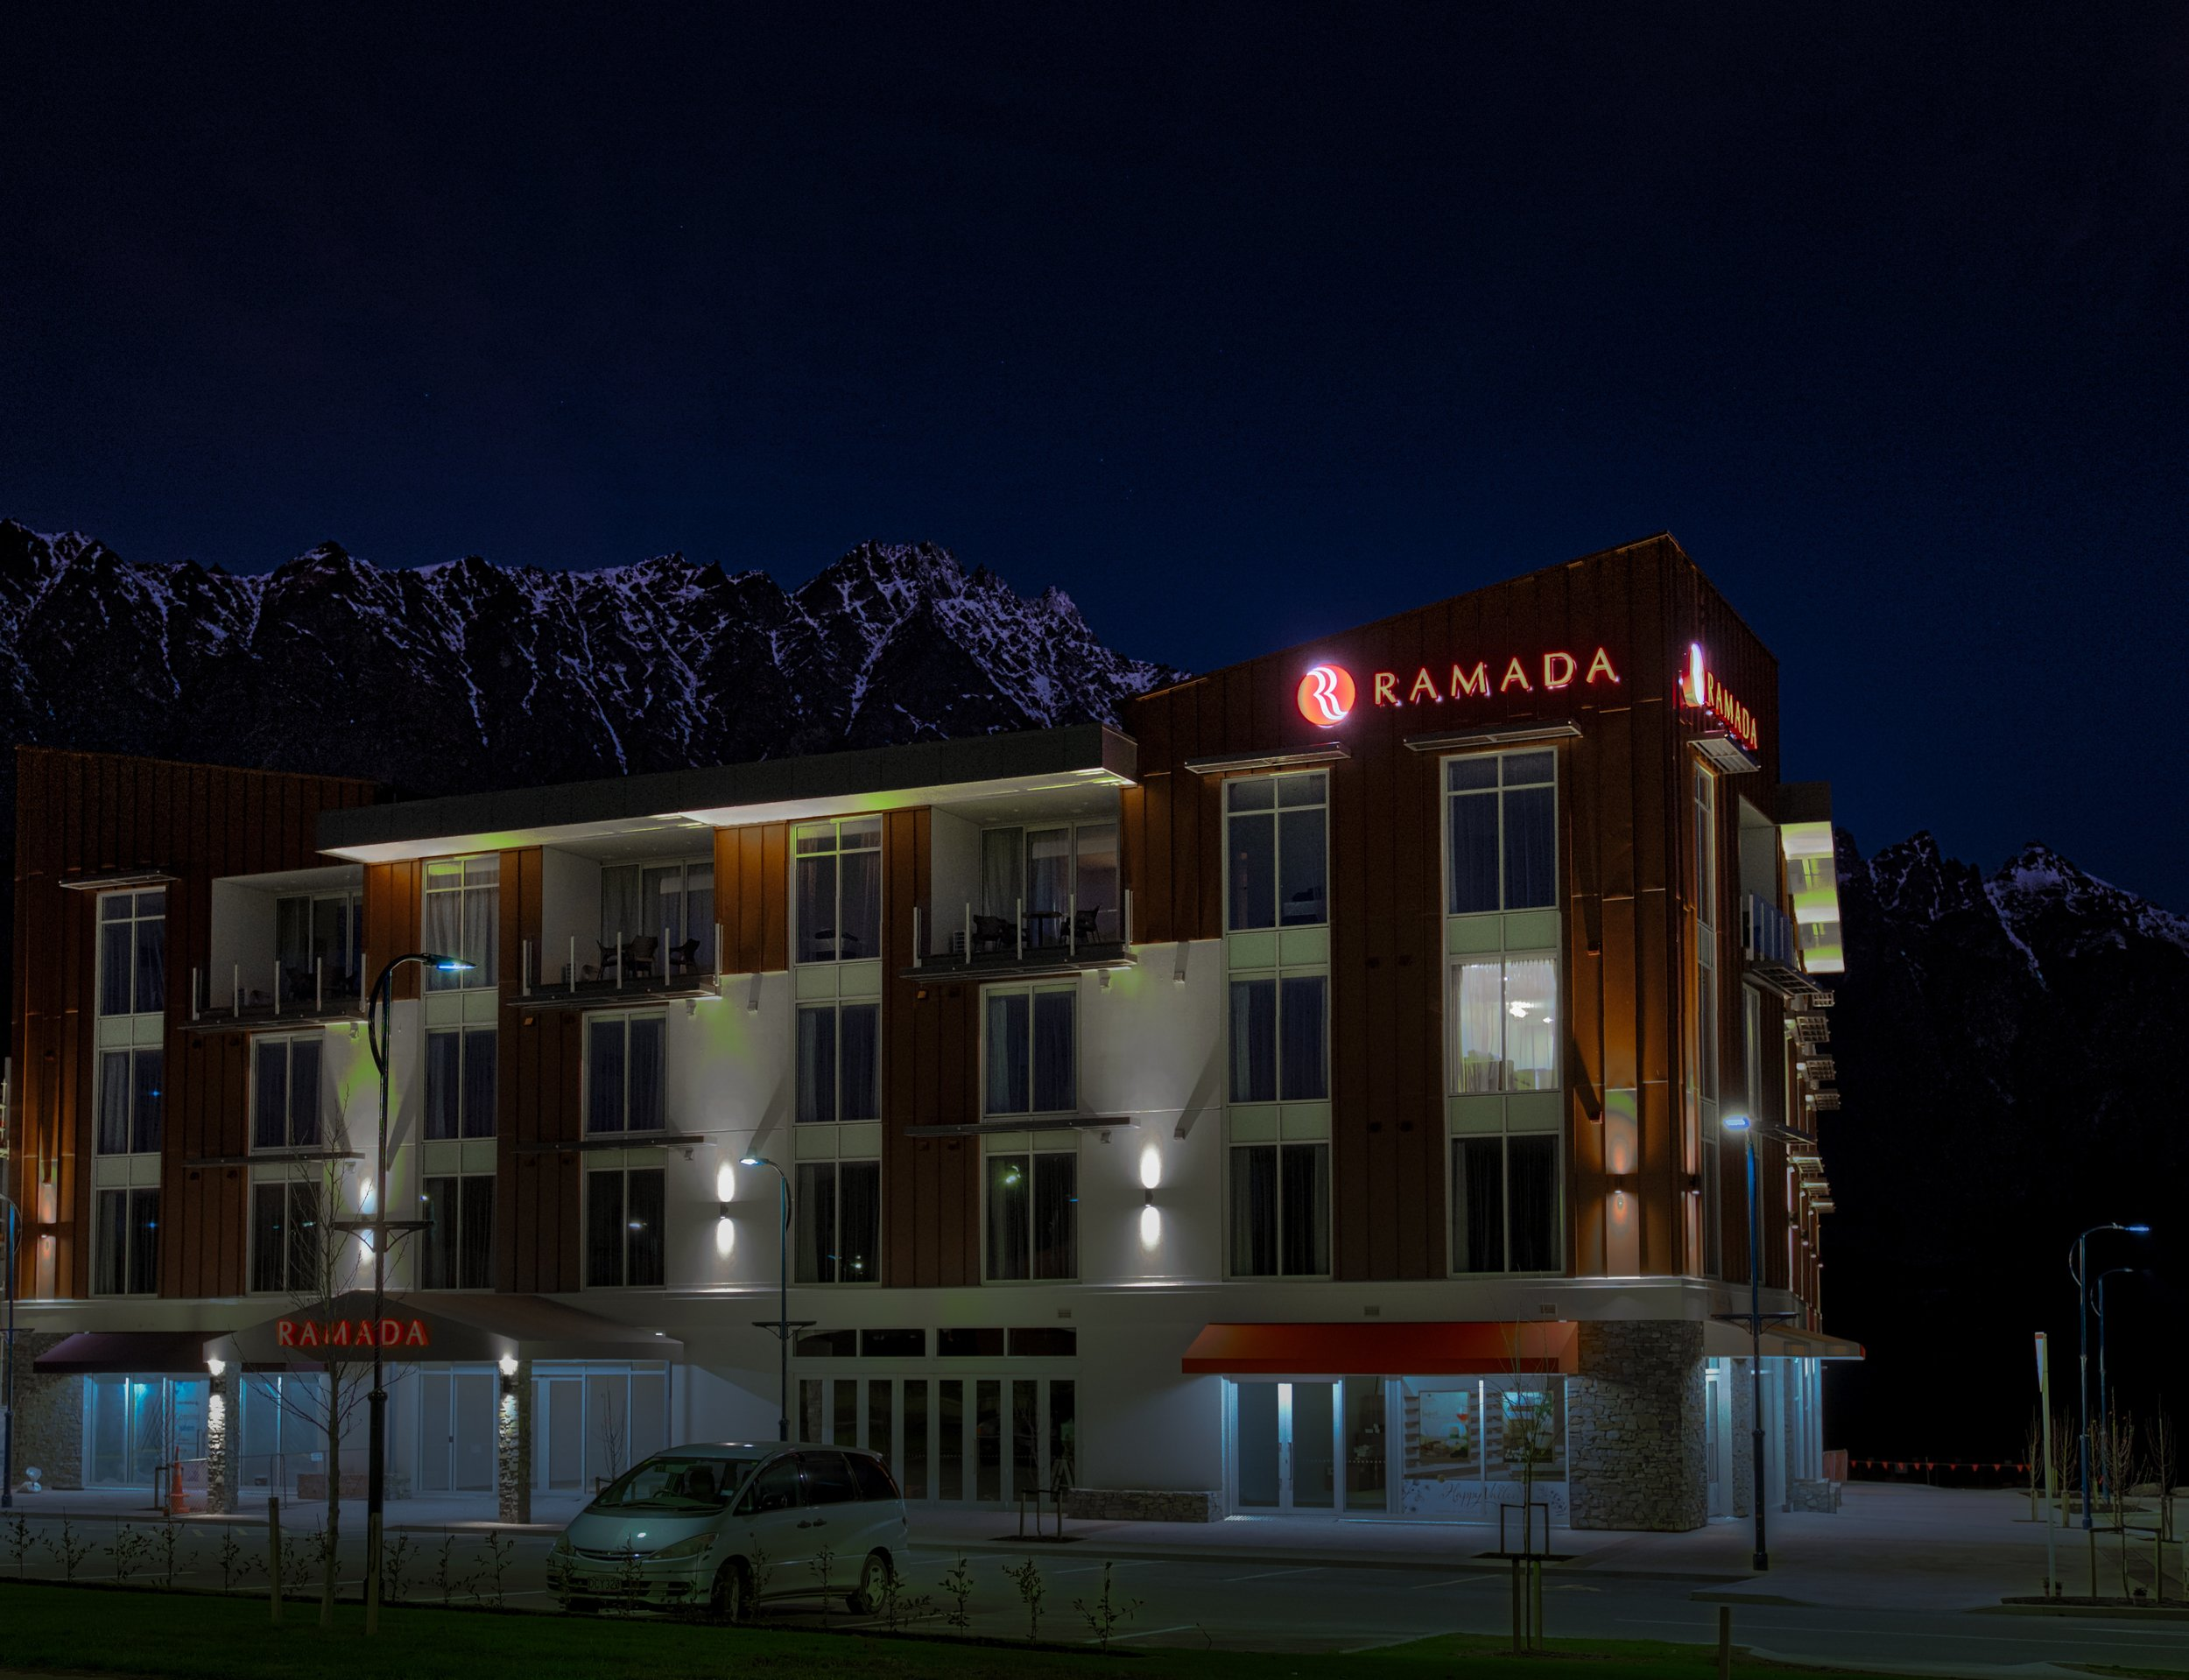 Architectural Gallery Ramada Queenstown The Roofing Store